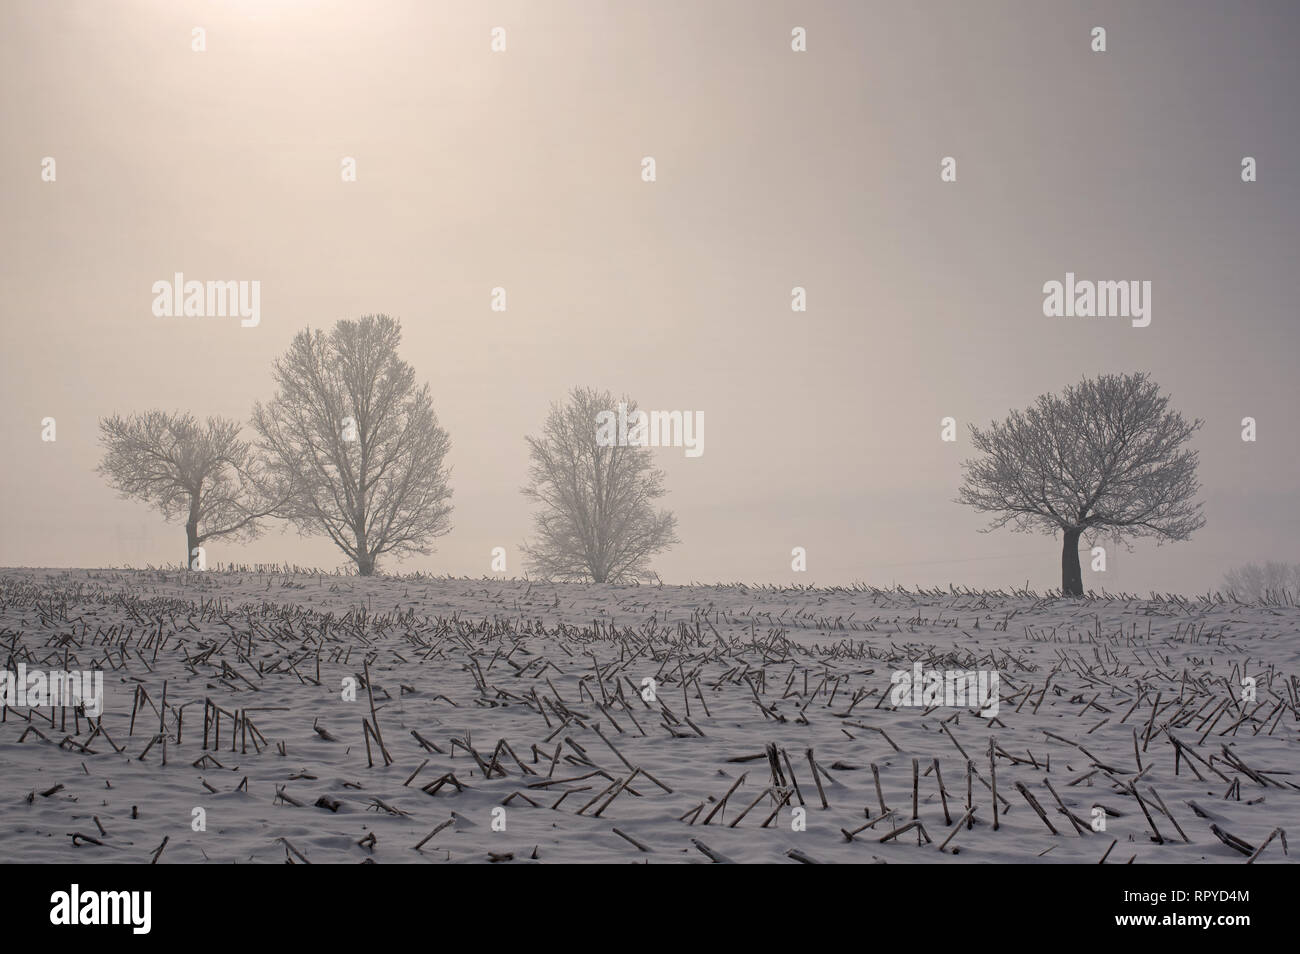 Trees shrouded in fog and covered with a heavy hoarfrost overlooking corn stubble from the previous year's harvest. Taken in the early morning light. - Stock Image